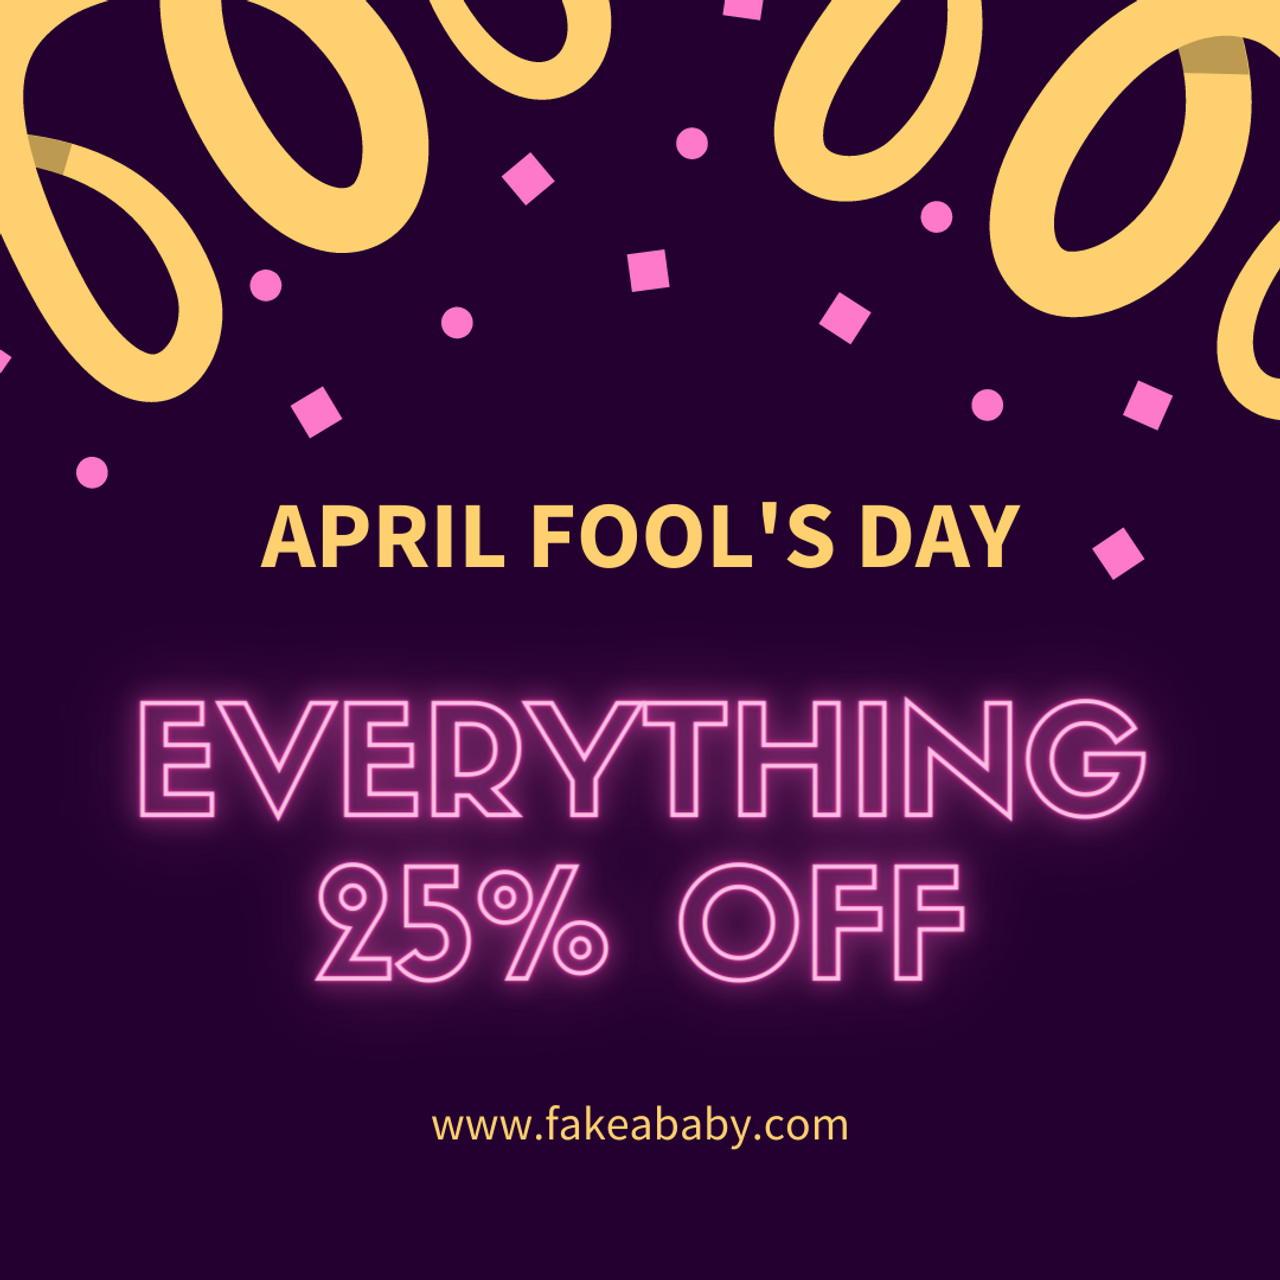 Enjoy 25% OFF on EVERYTHING-APRIL FOOL'S DAY SALE| Fake a baby